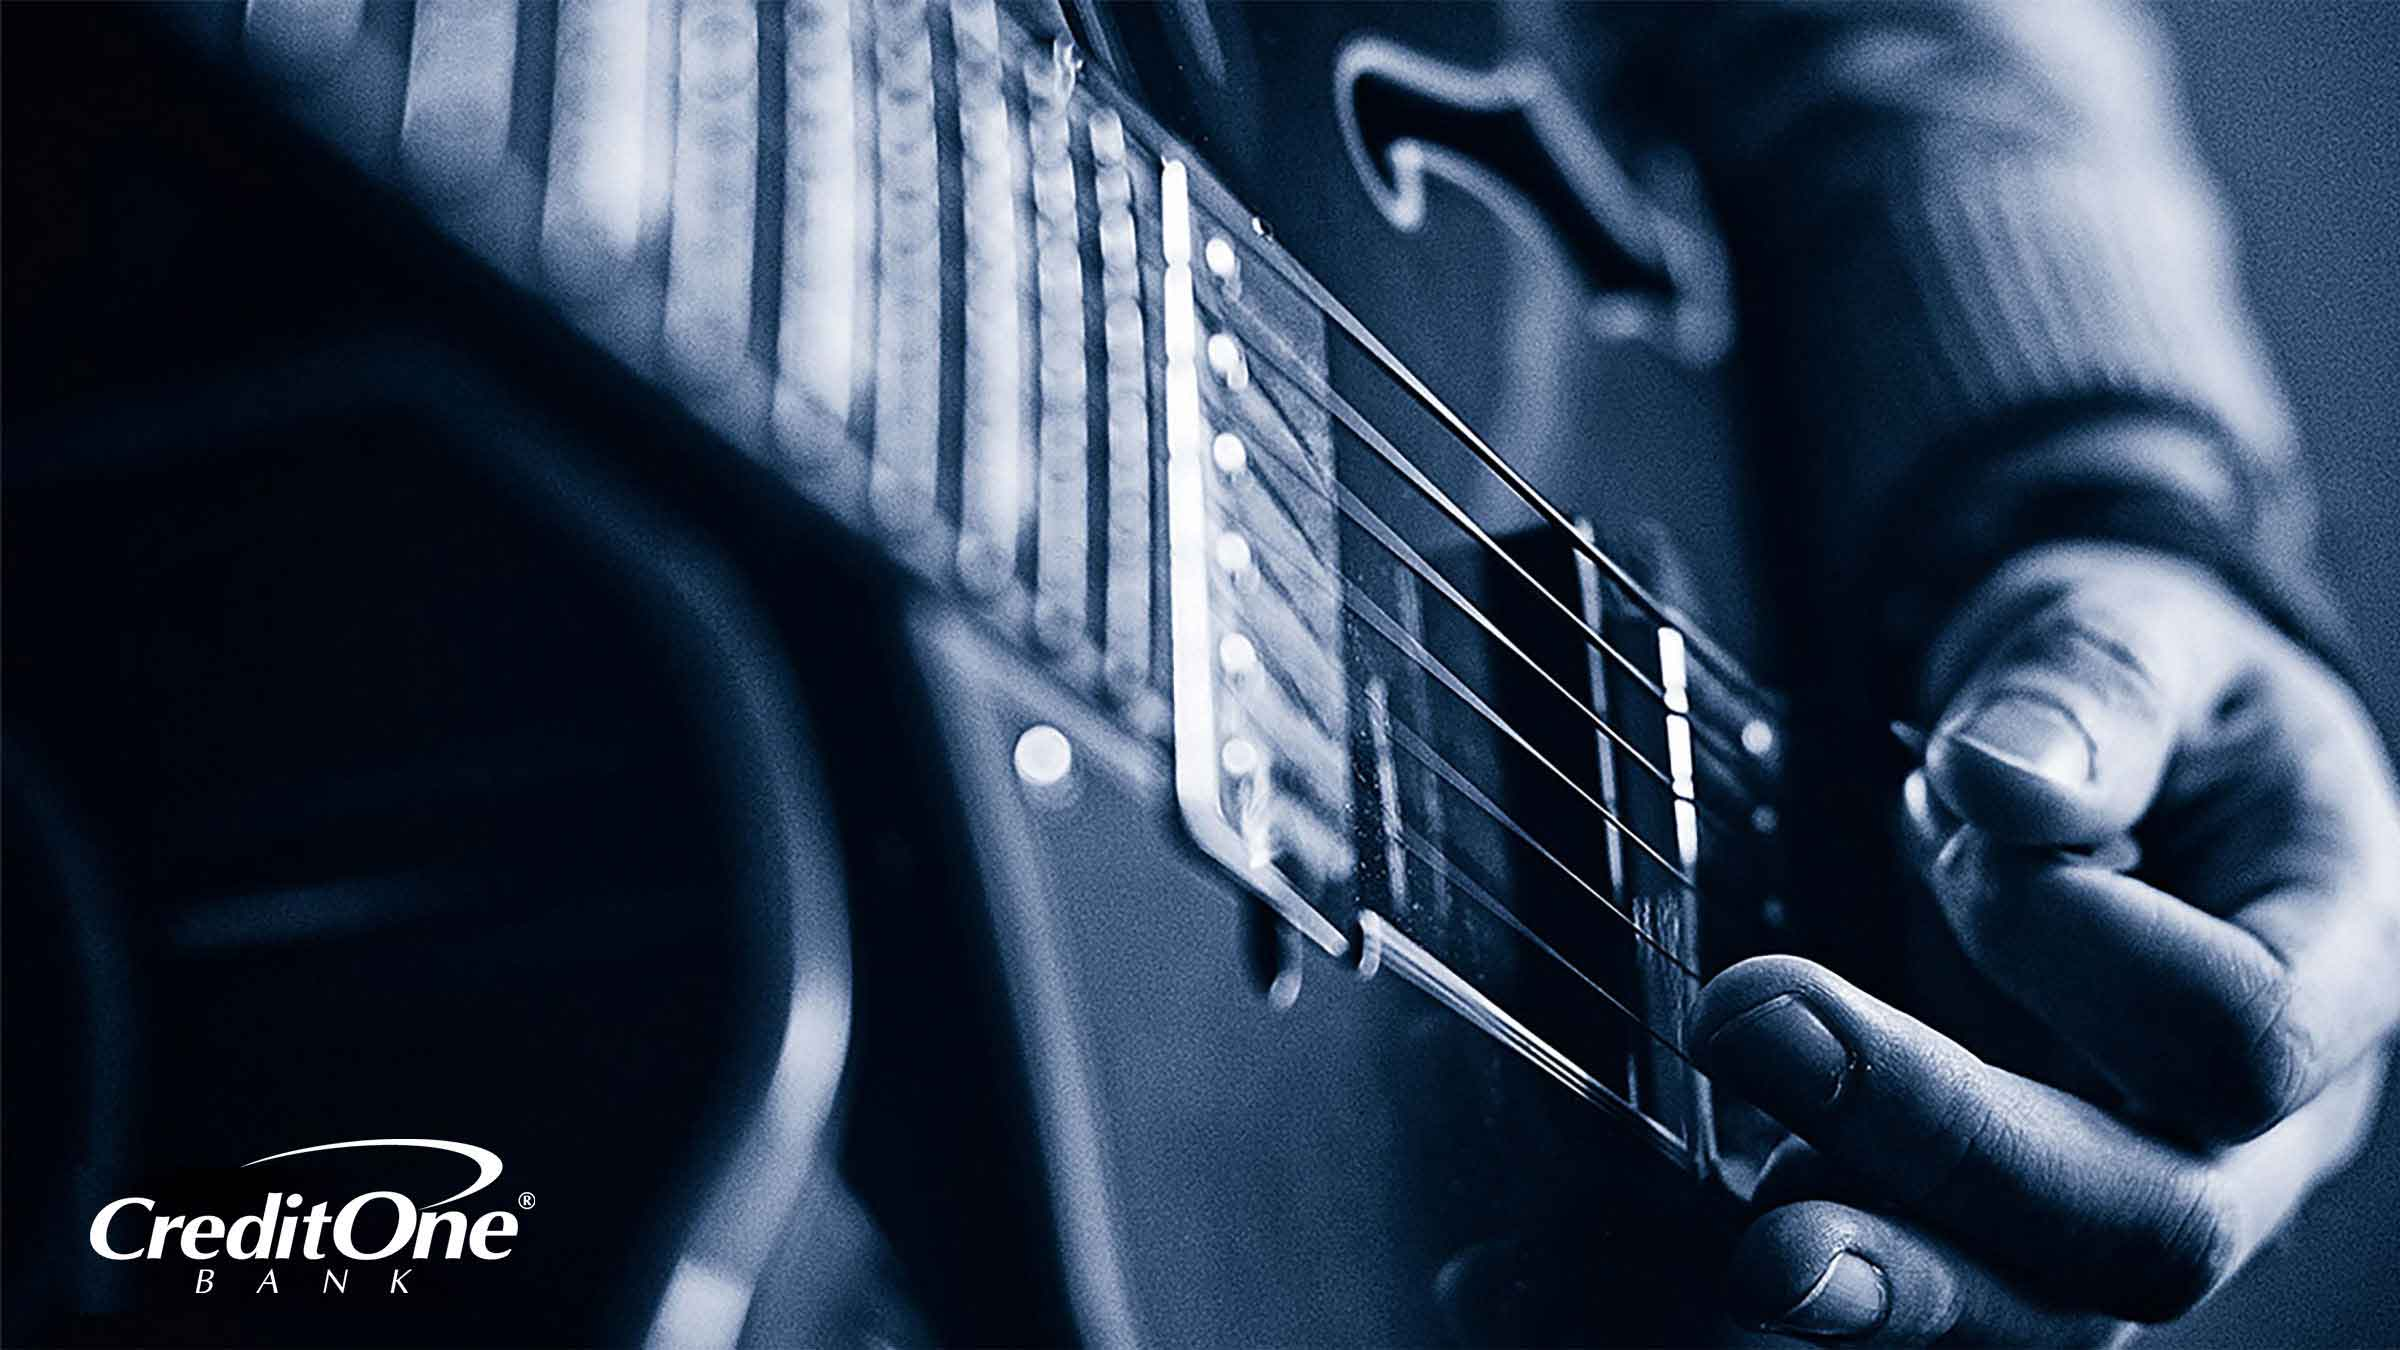 Closeup of a hand strumming a guitar